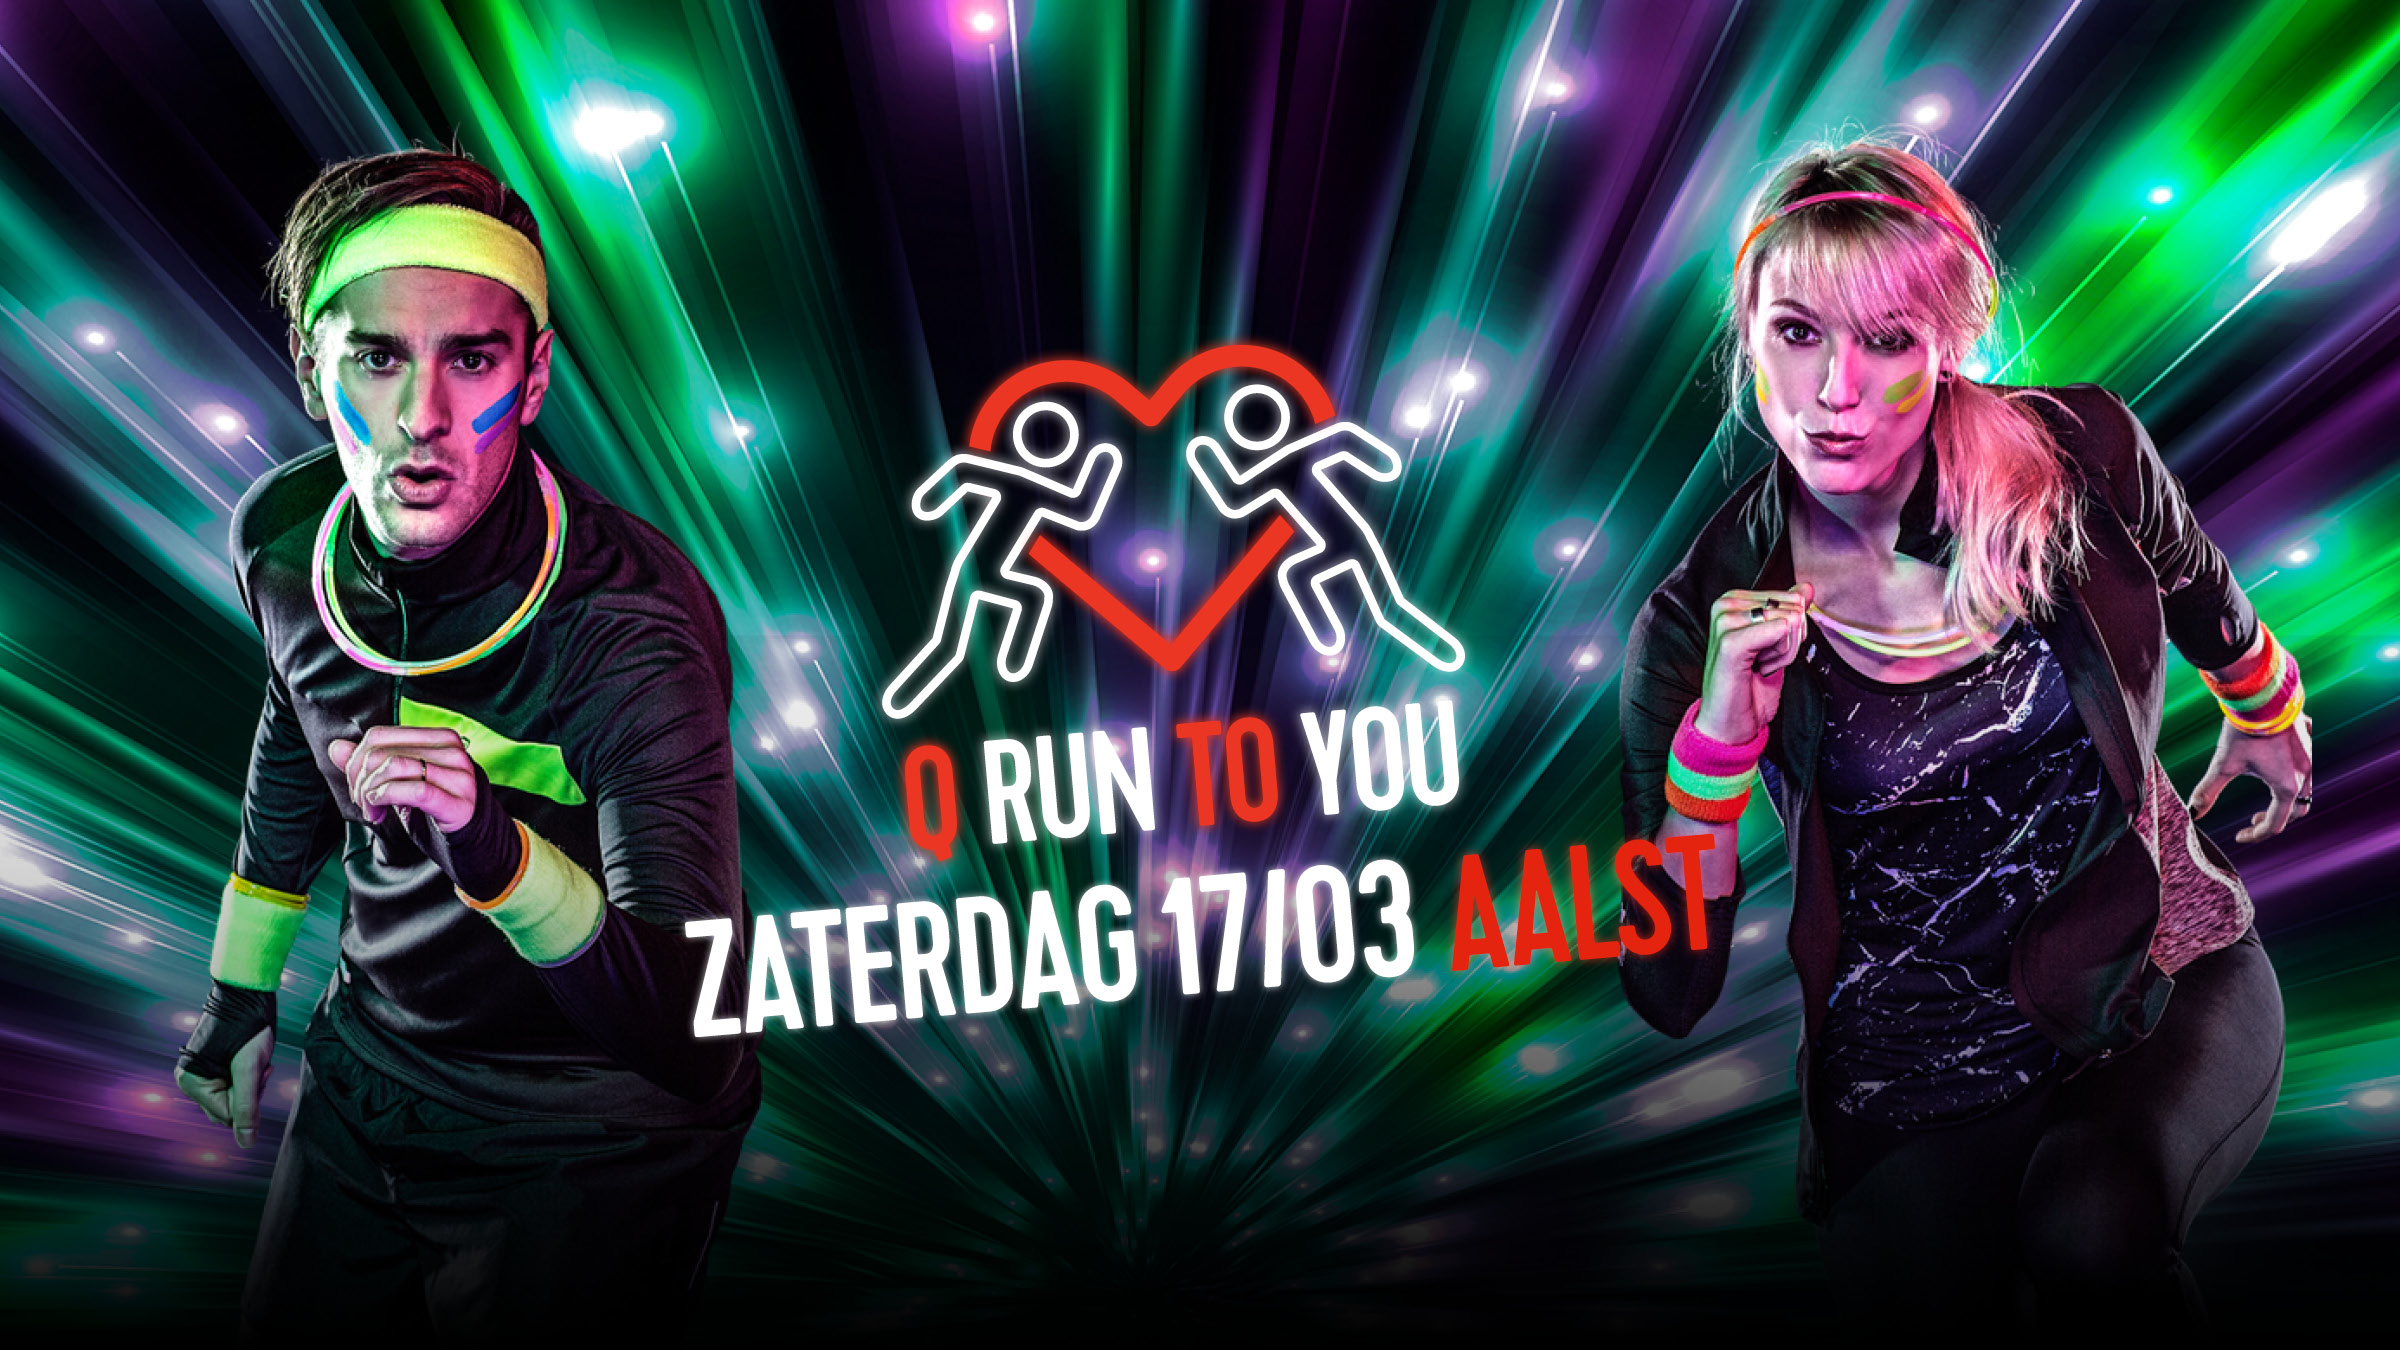 Run to you aalst home 2400x1350